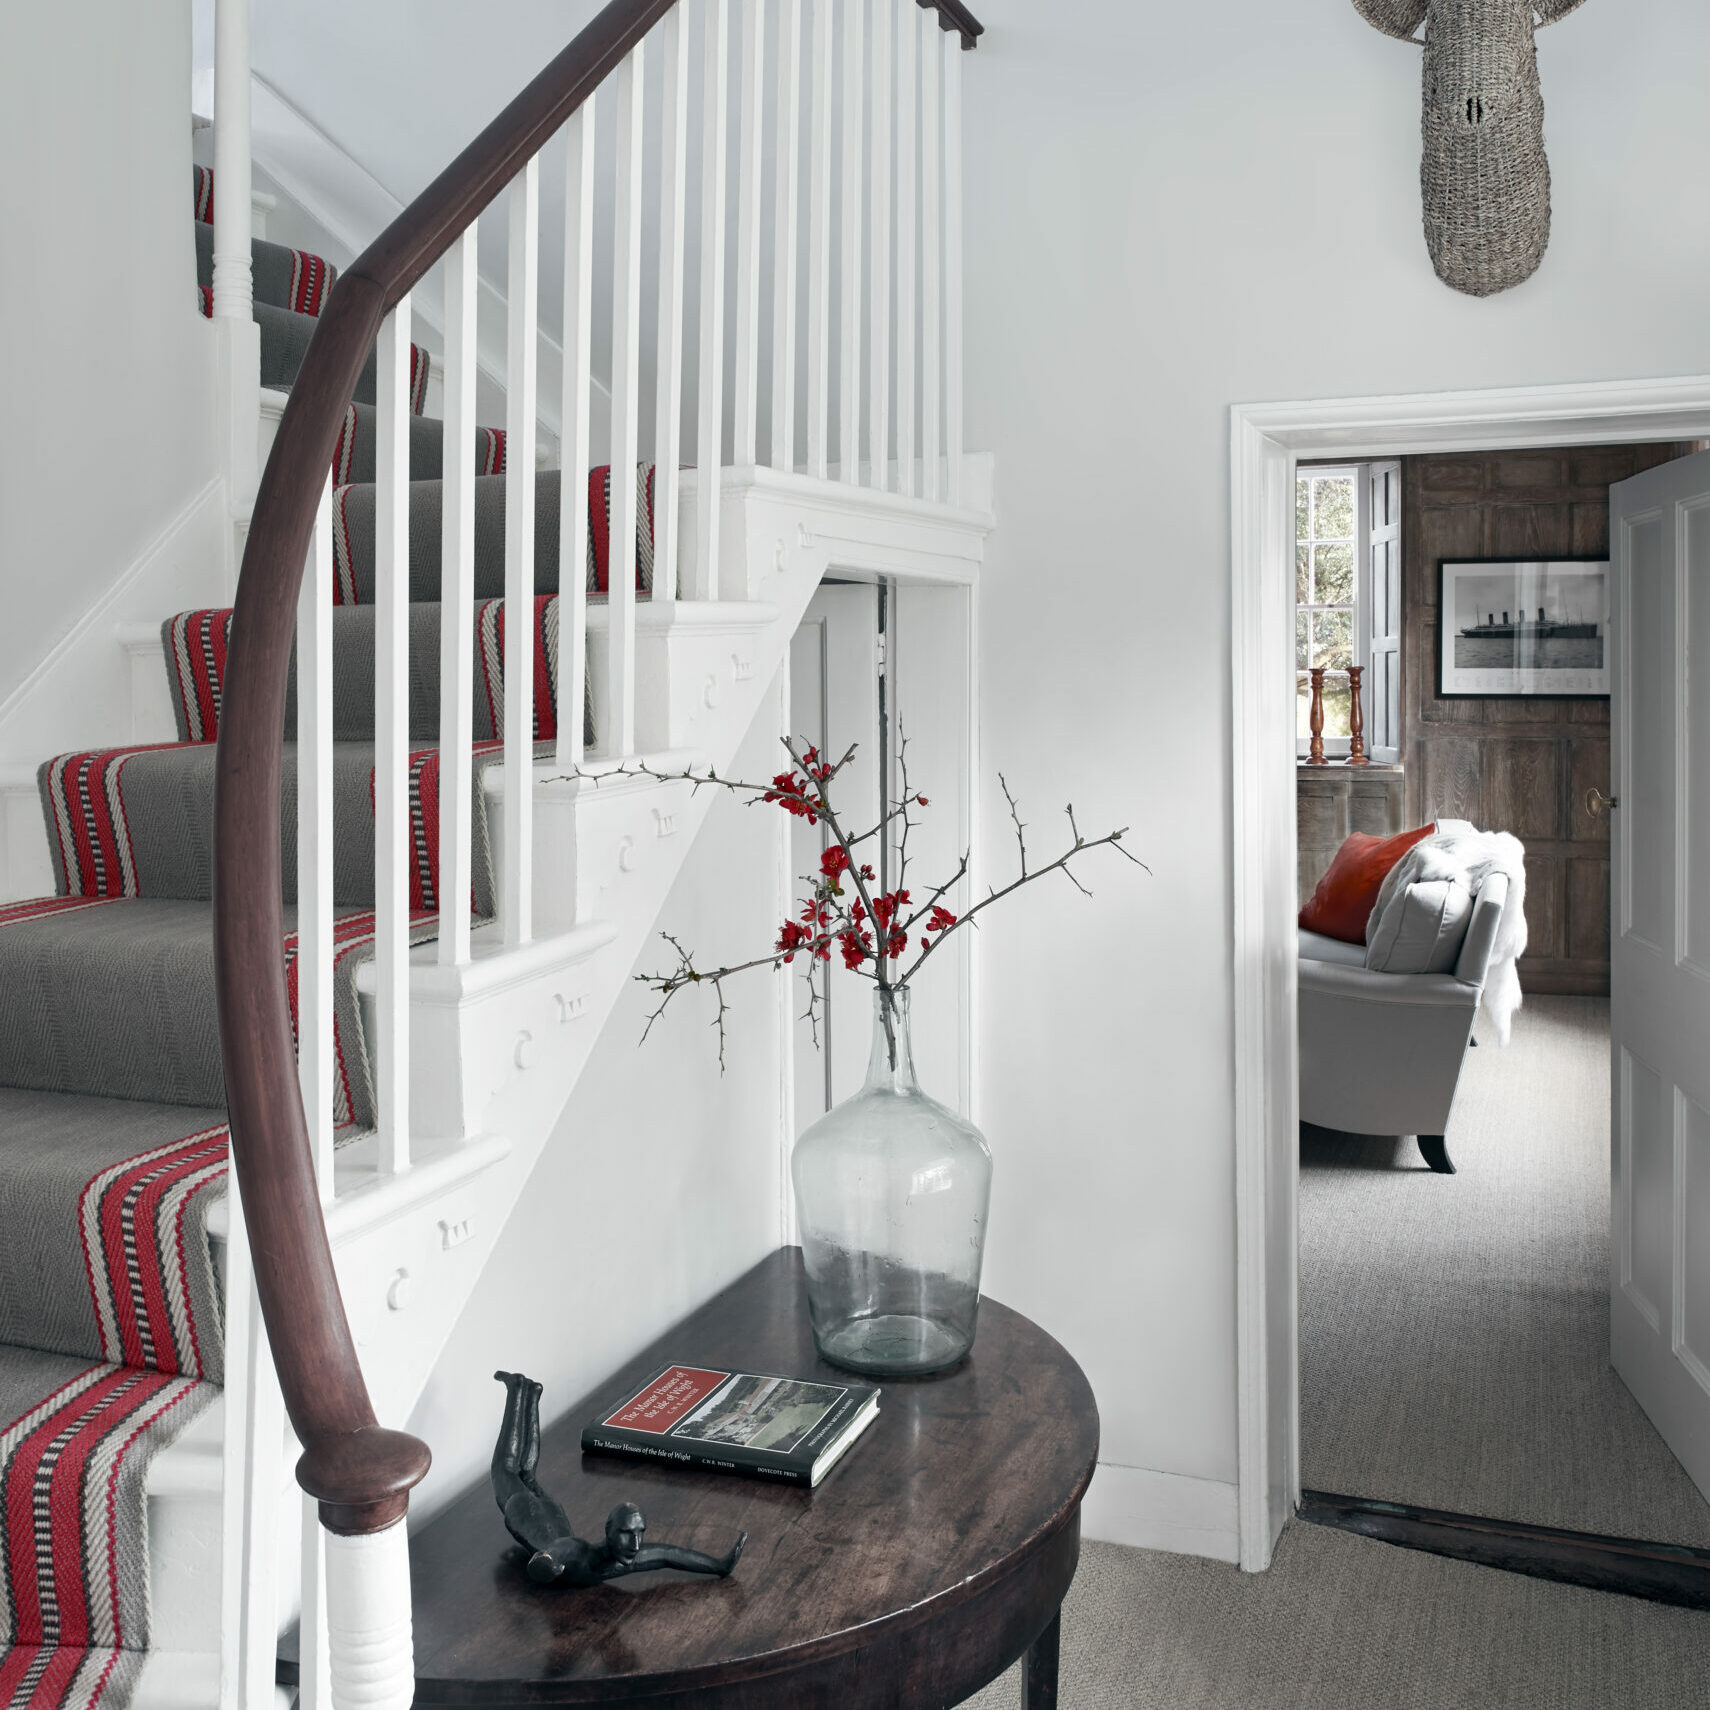 4. Stair case view to drawing room